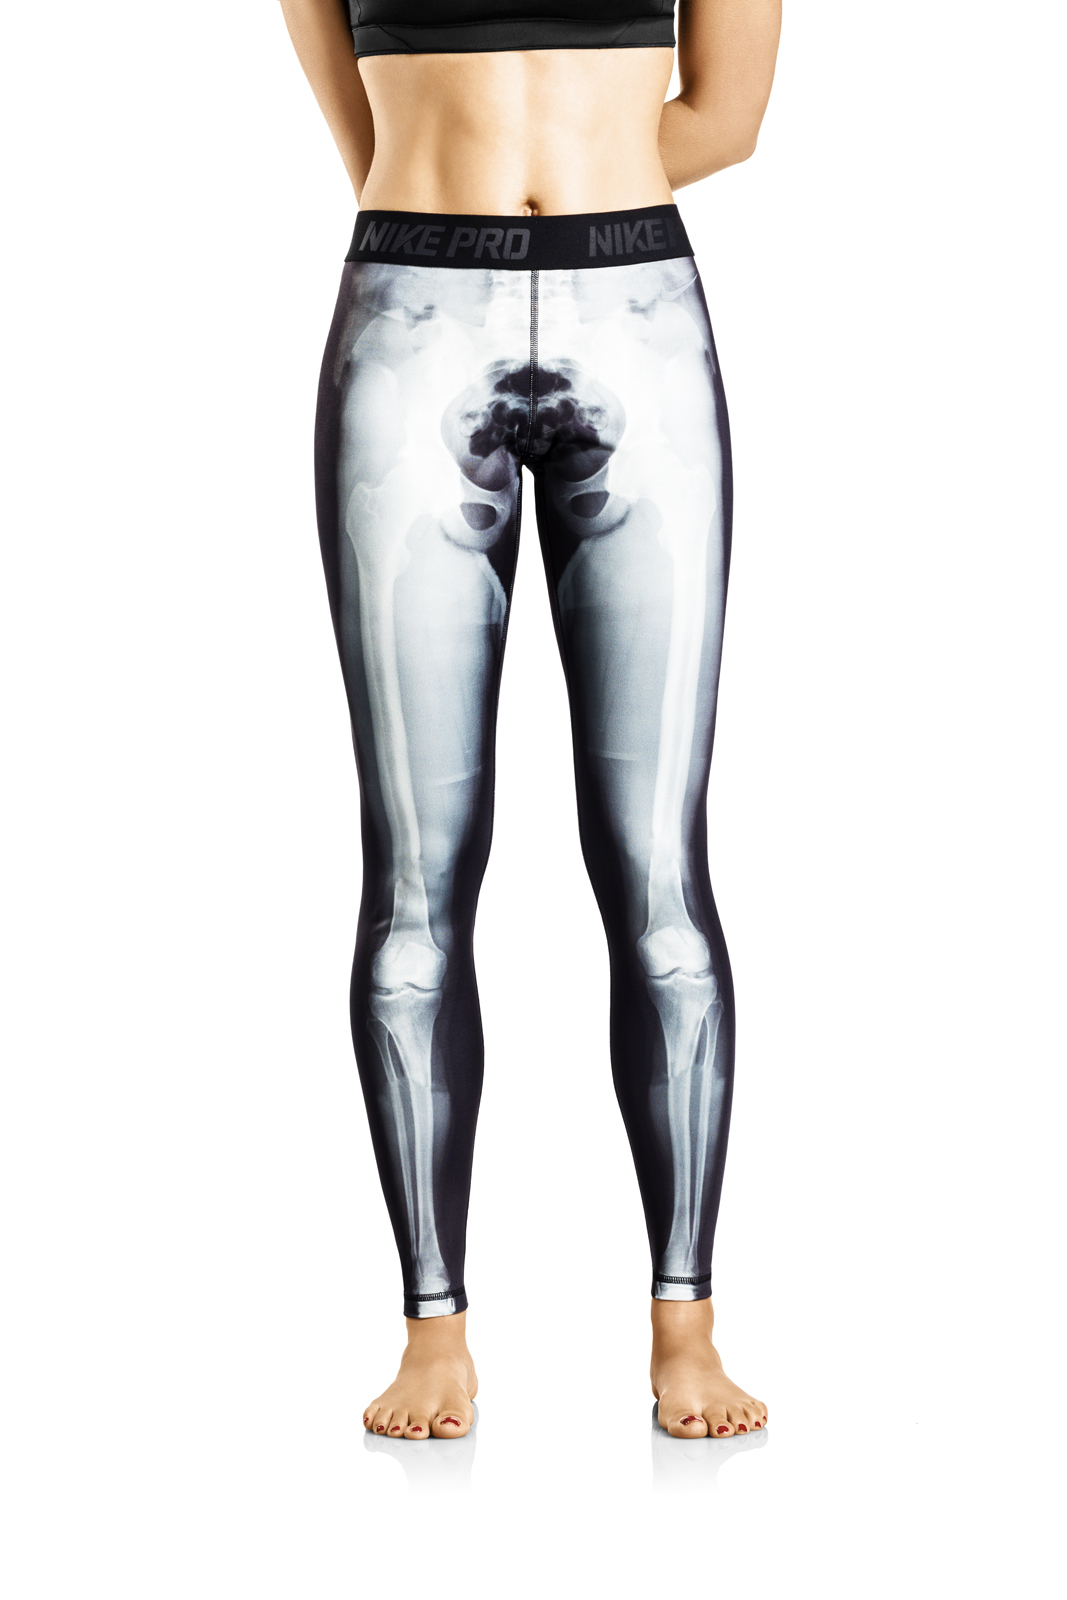 Nike_Exclusive_Print_Tight_1_original.jpg